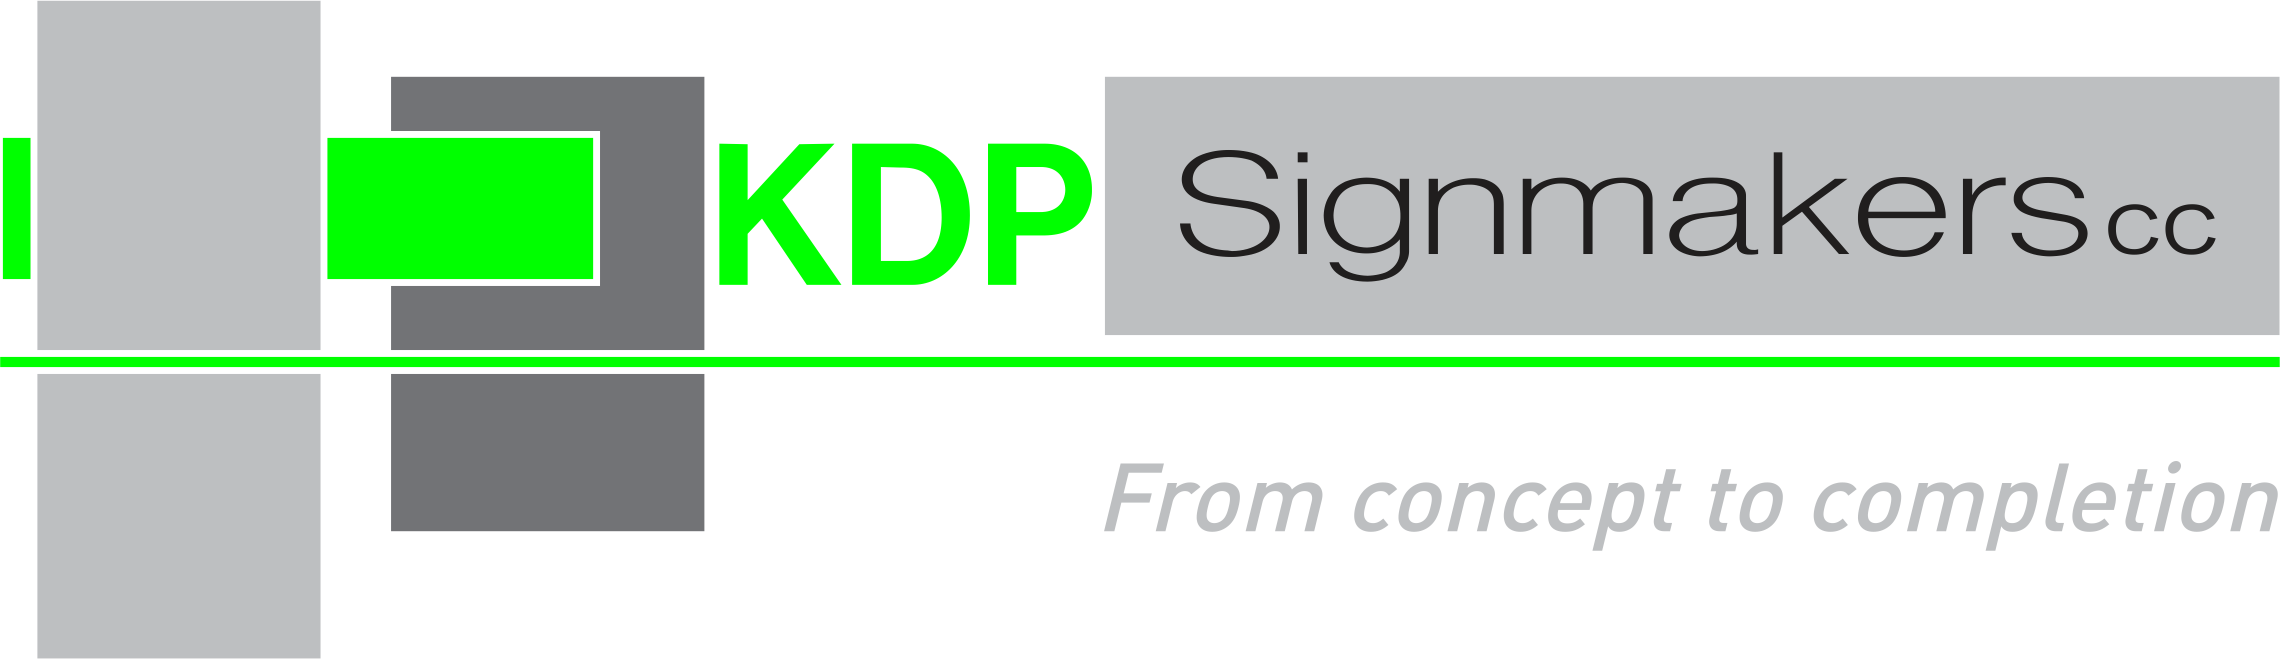 Translucent transparent opaque objects. Or kdp signmakers